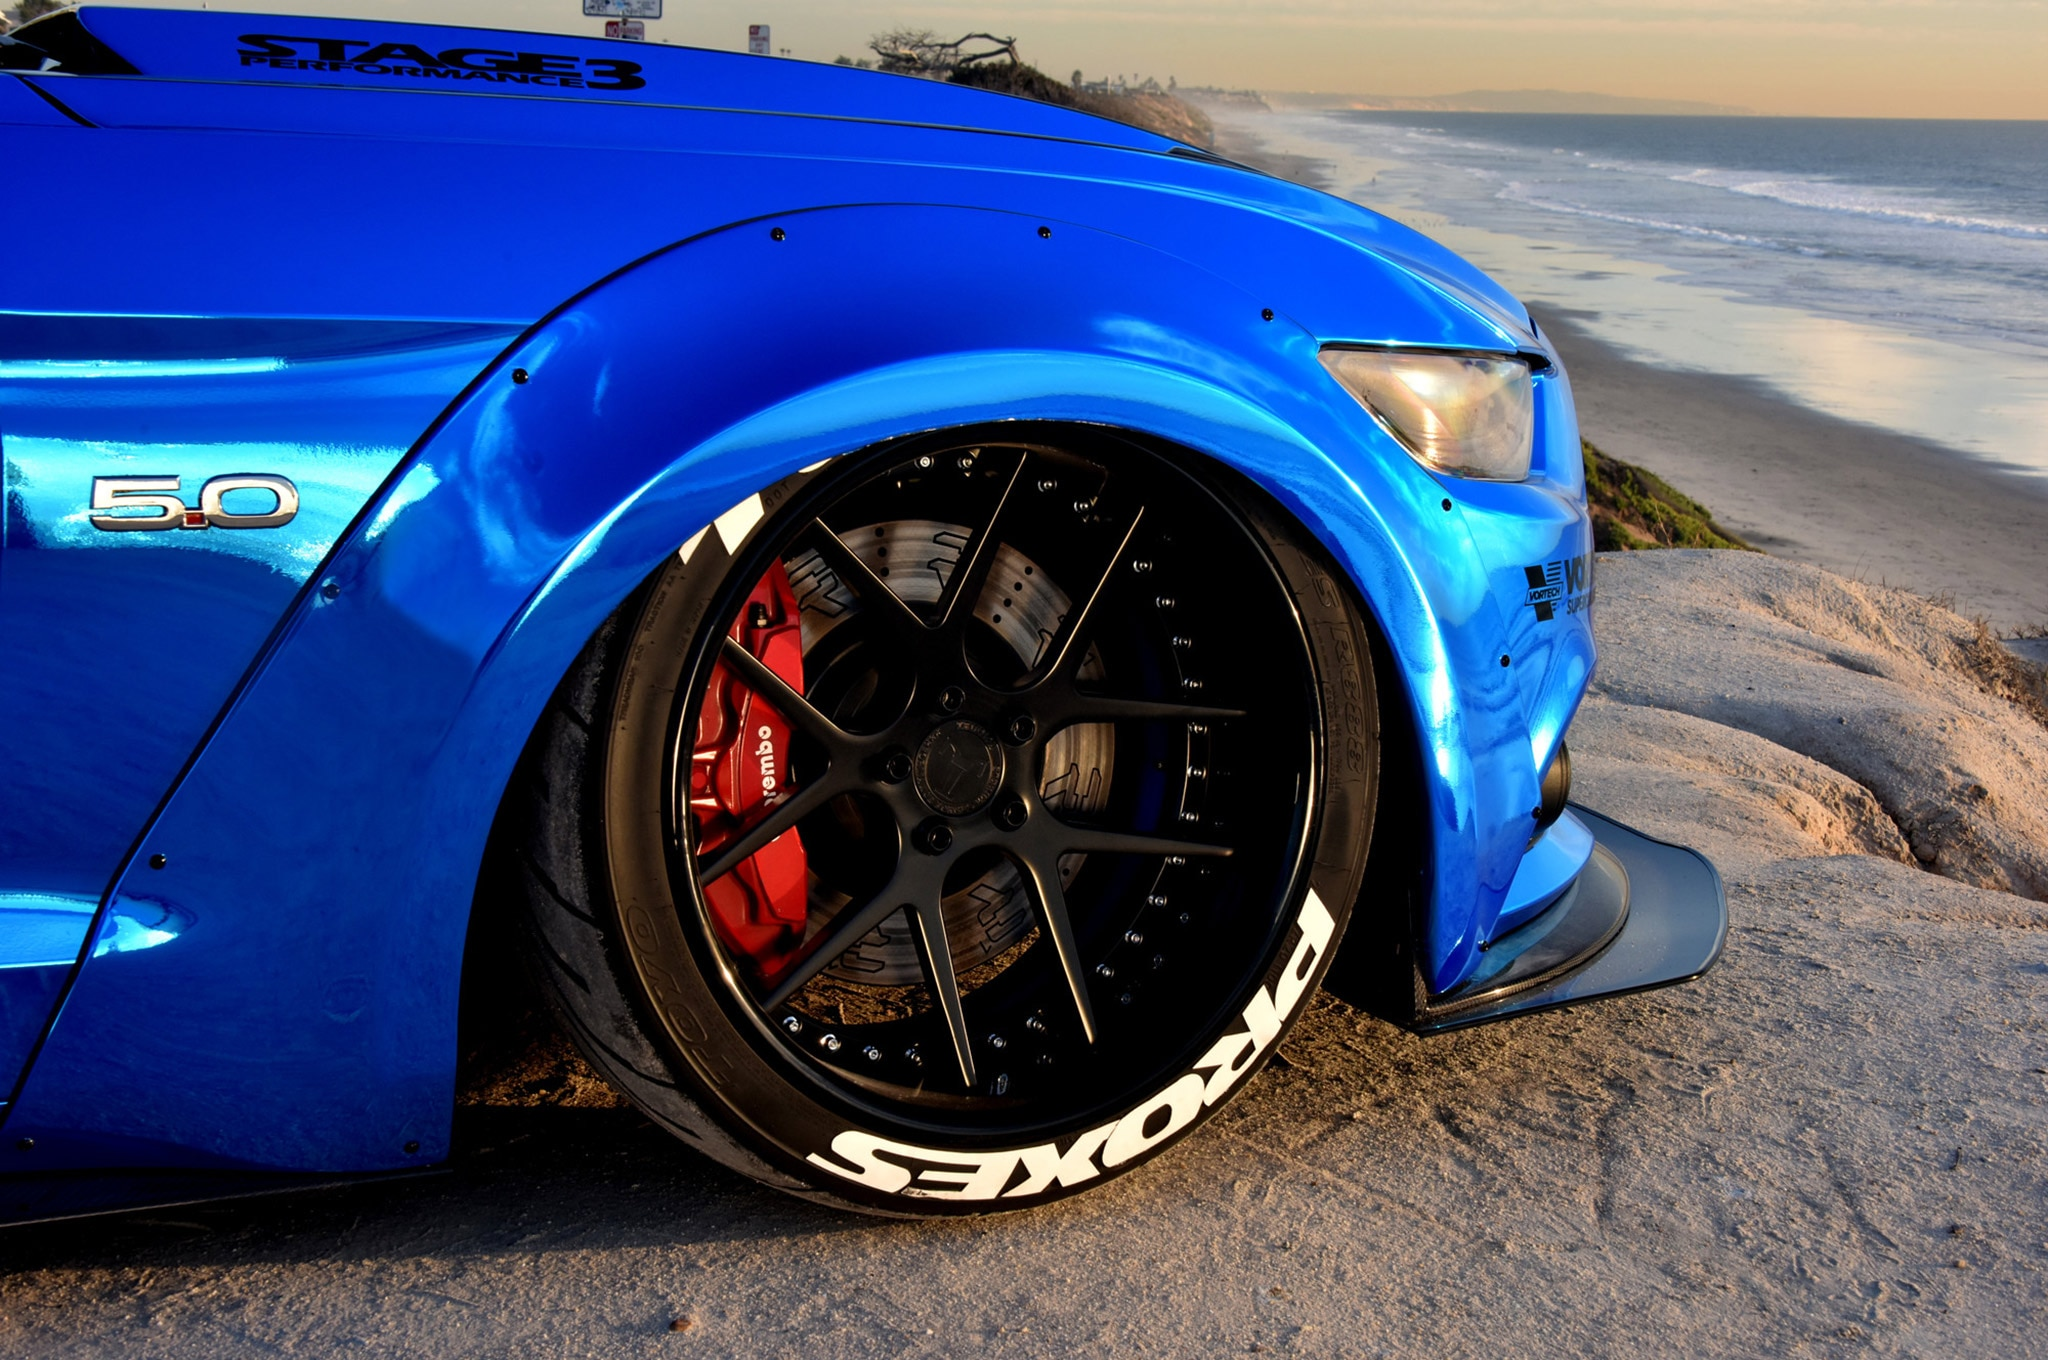 2015 Ford Mustang Blue Chrome Soto 07 Toyo Tire